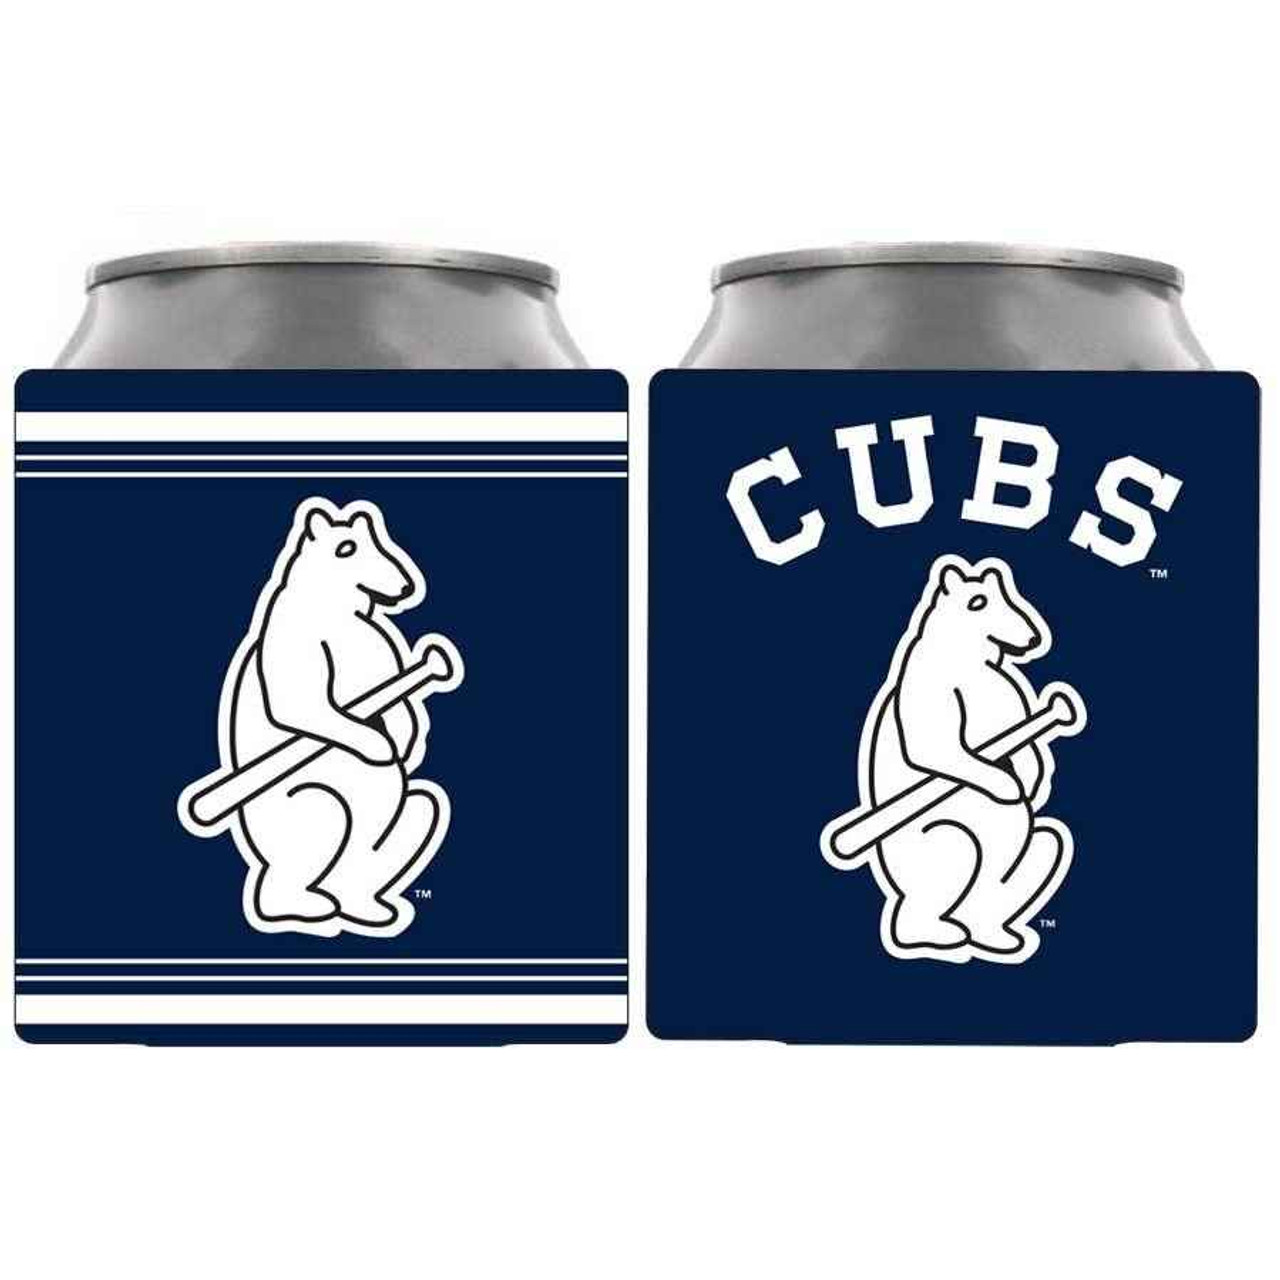 Chicago Cubs 1914 Cooperstown Coozie Cooler By Wincraft Mlb Thank you for the detailed directions. sports world chicago